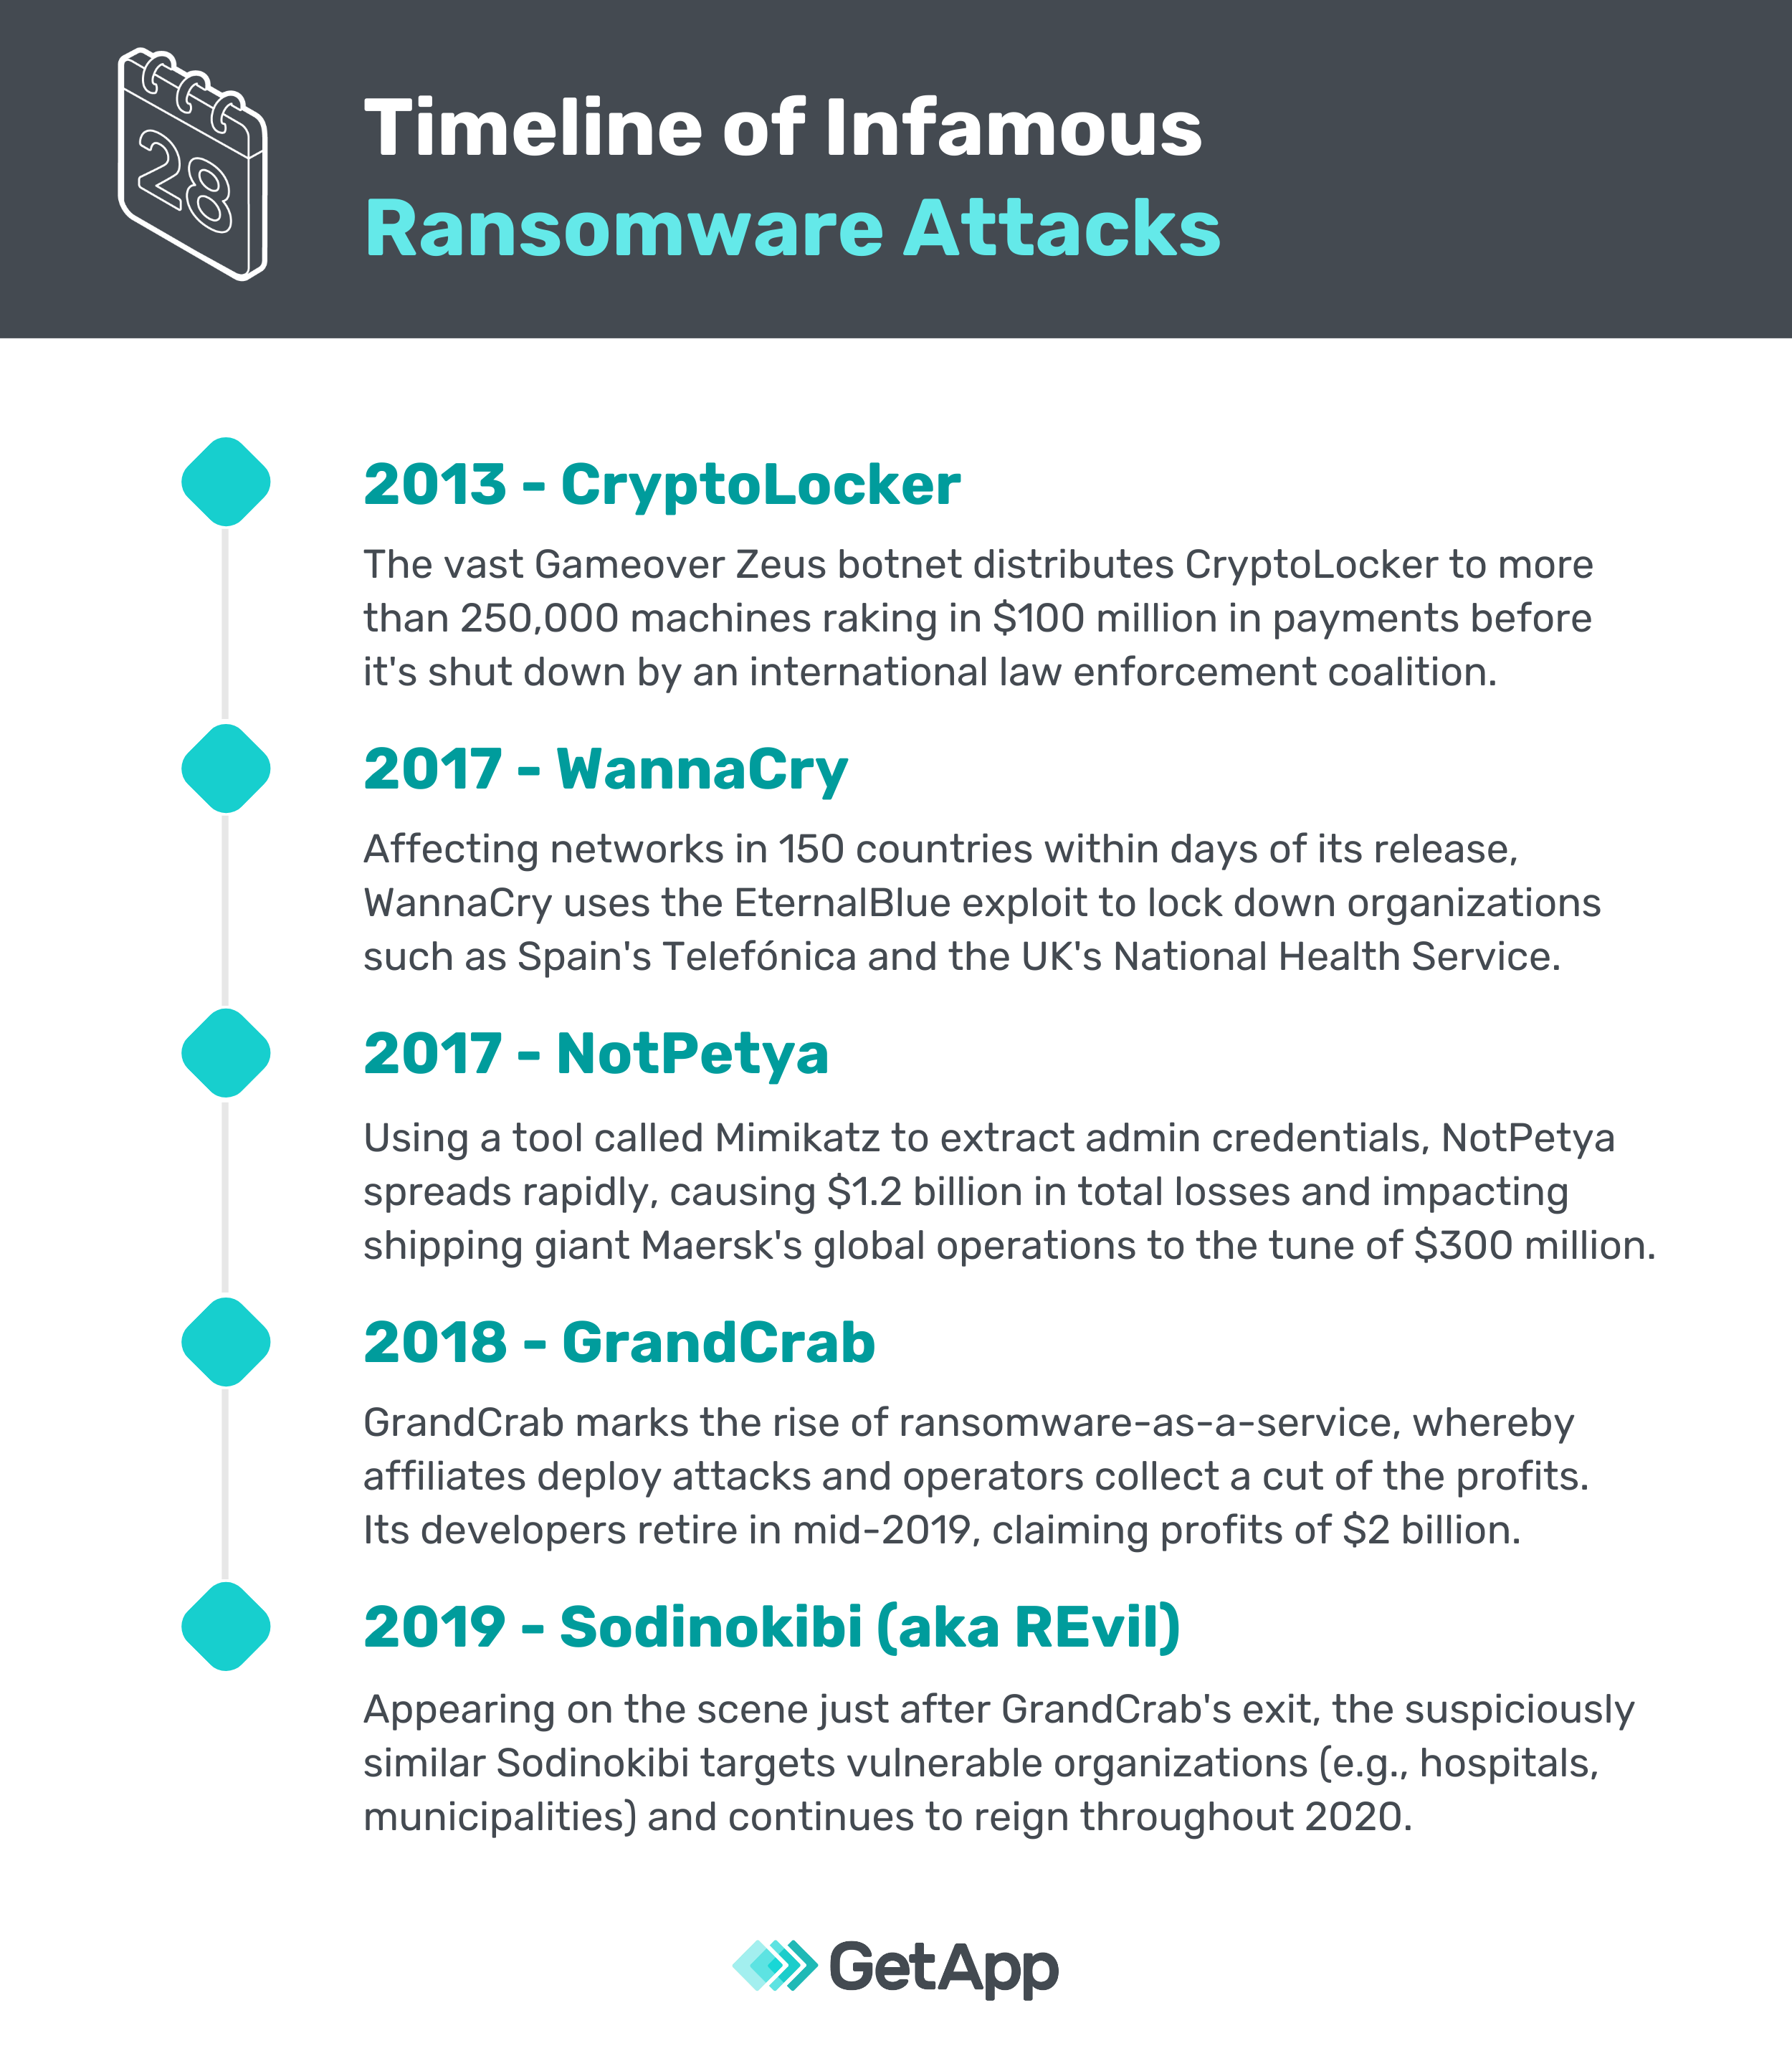 graphic showing the timeline of infamous ransomware attacks throughout history